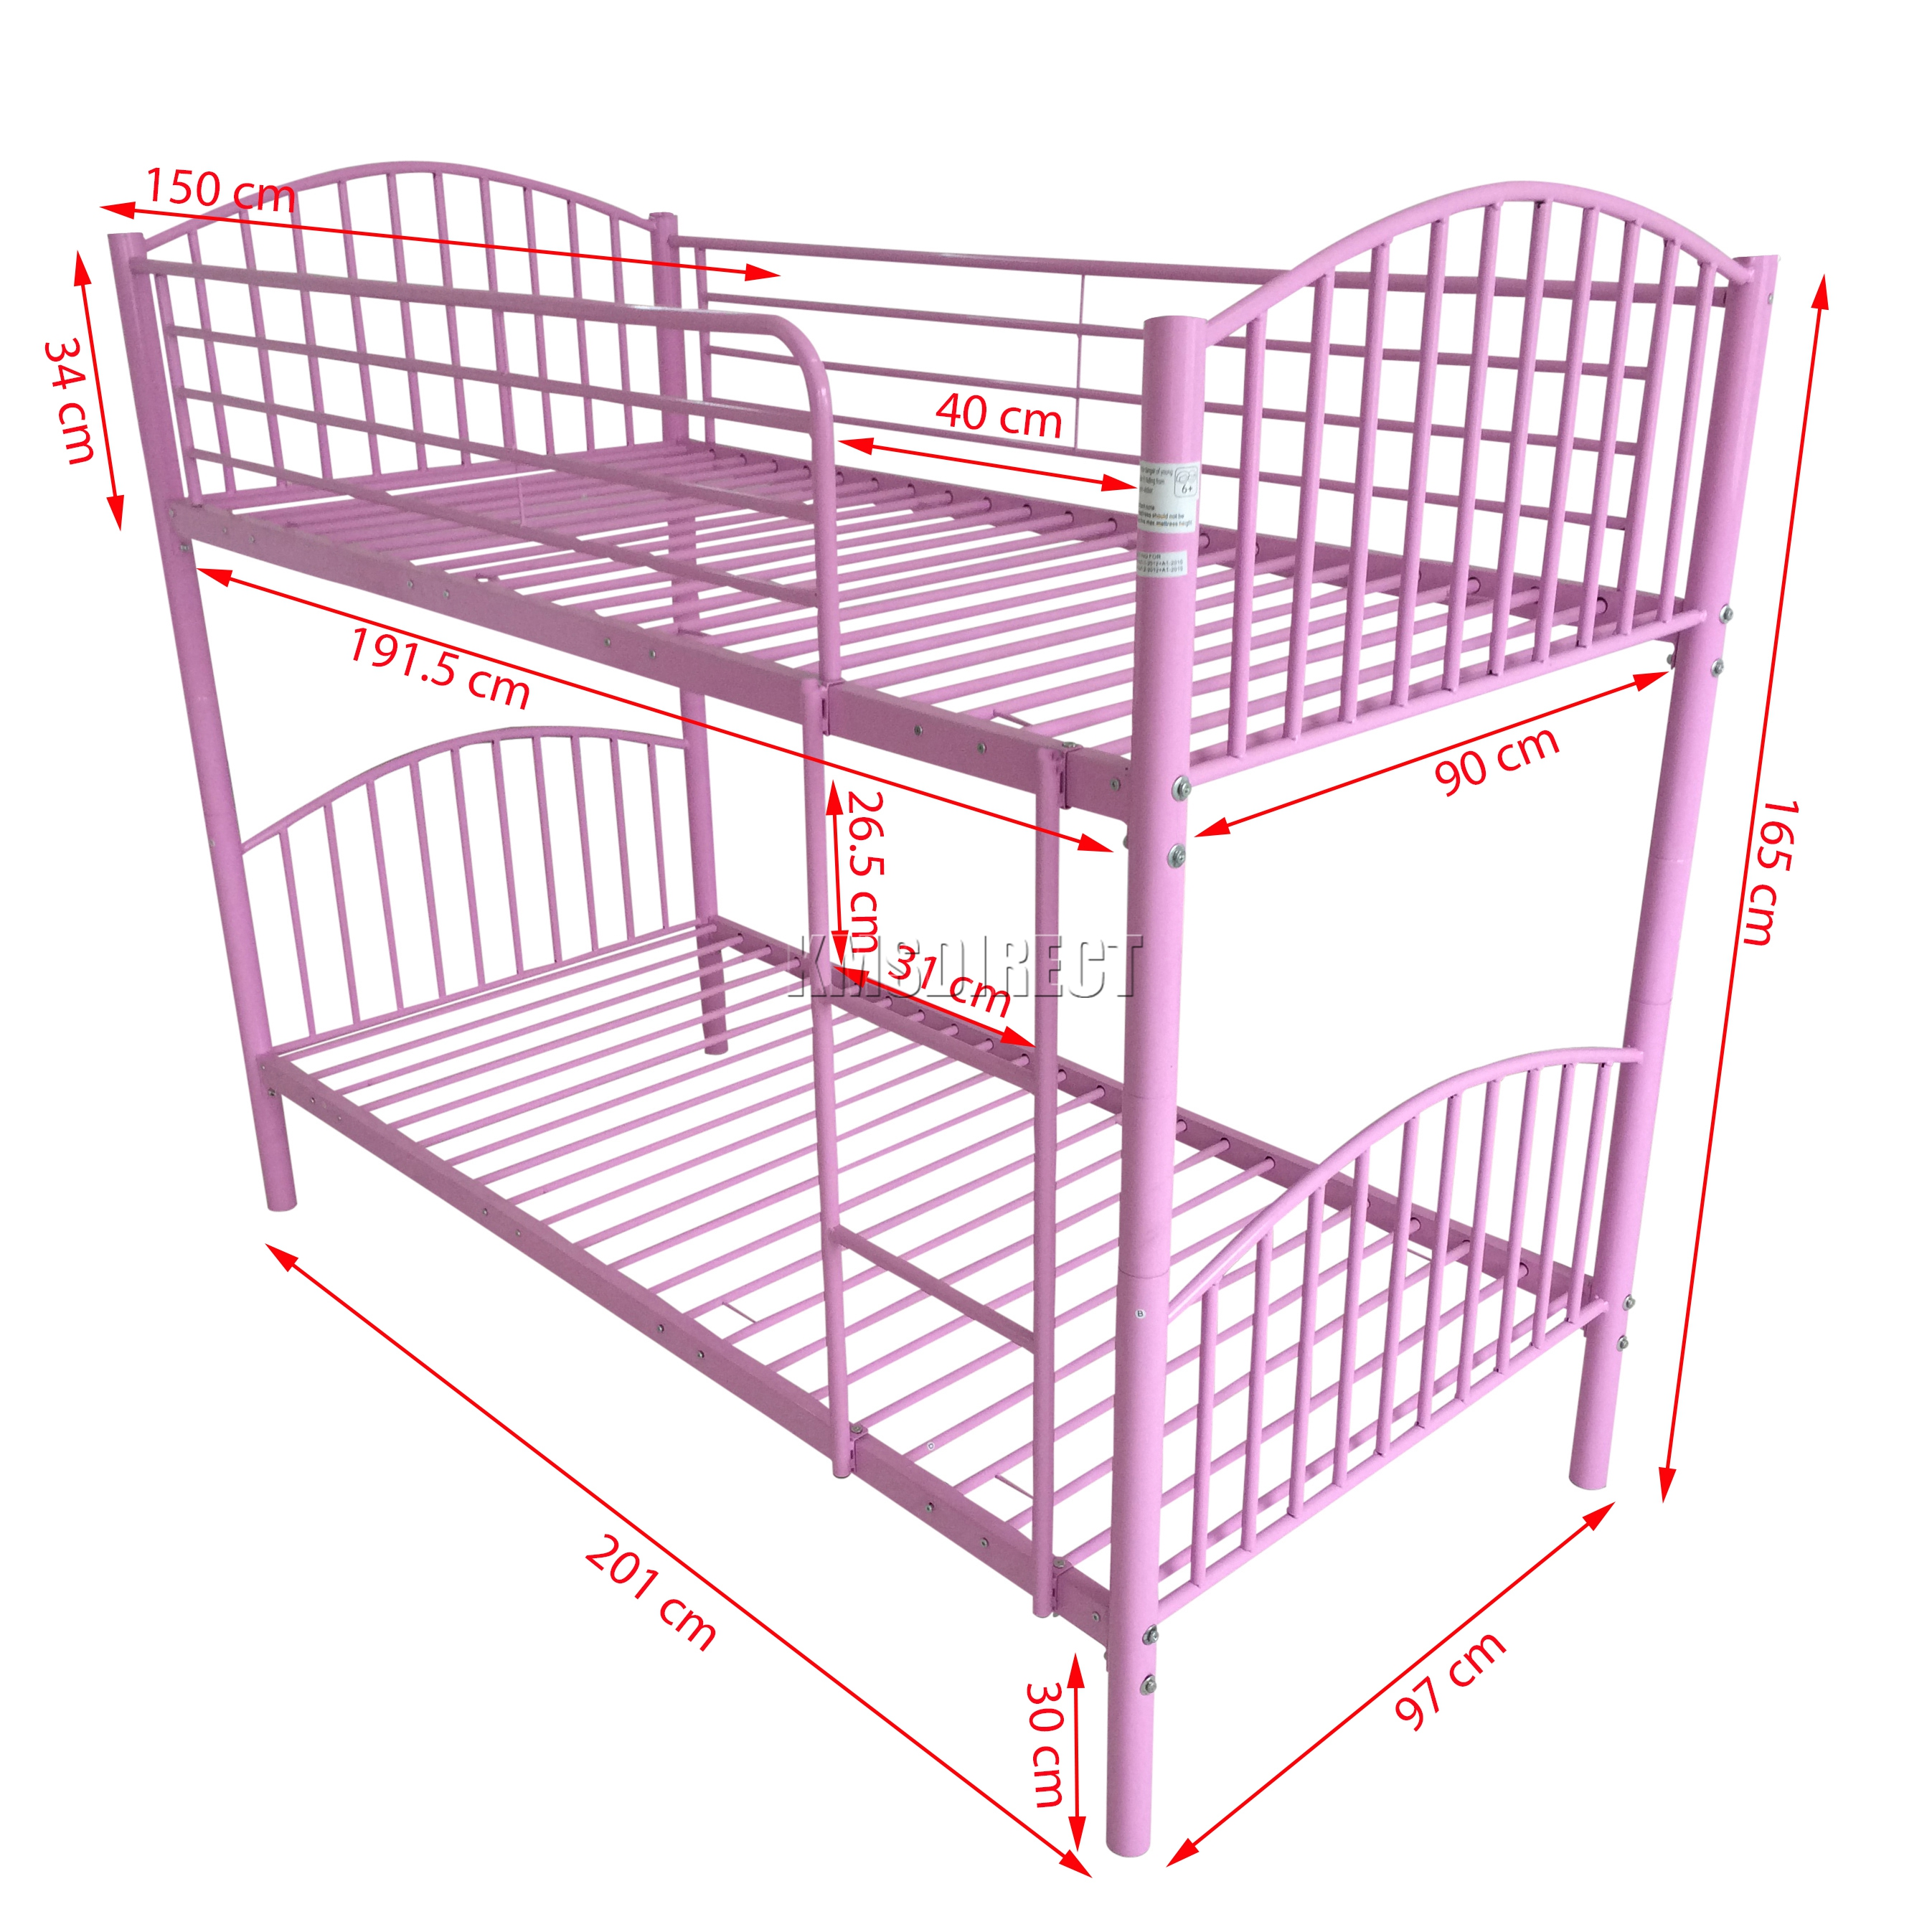 Foxhunter 3ft Single Metal Frame Bunk Bed Children Kids